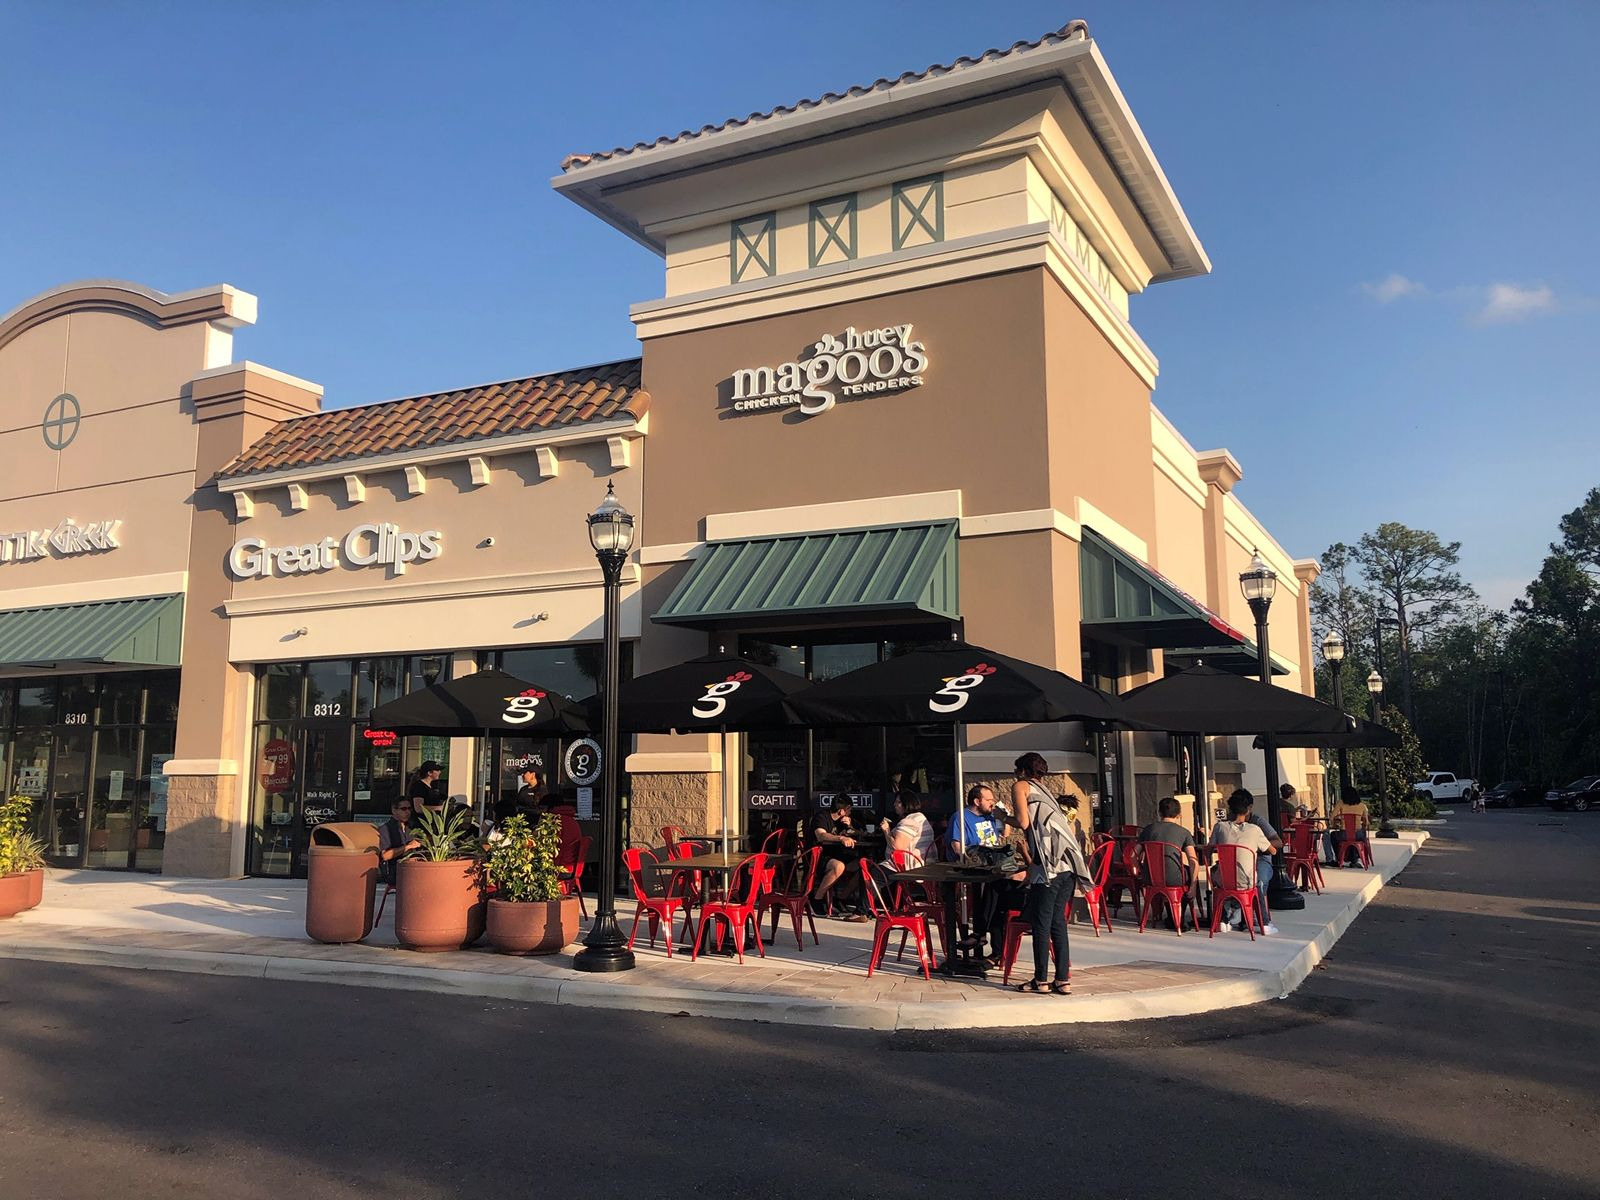 Huey Magoo's Chicken Tenders Announce Latest Opening In ChampionsGate, With Company-Wide Growth To Nearly Double In 2019